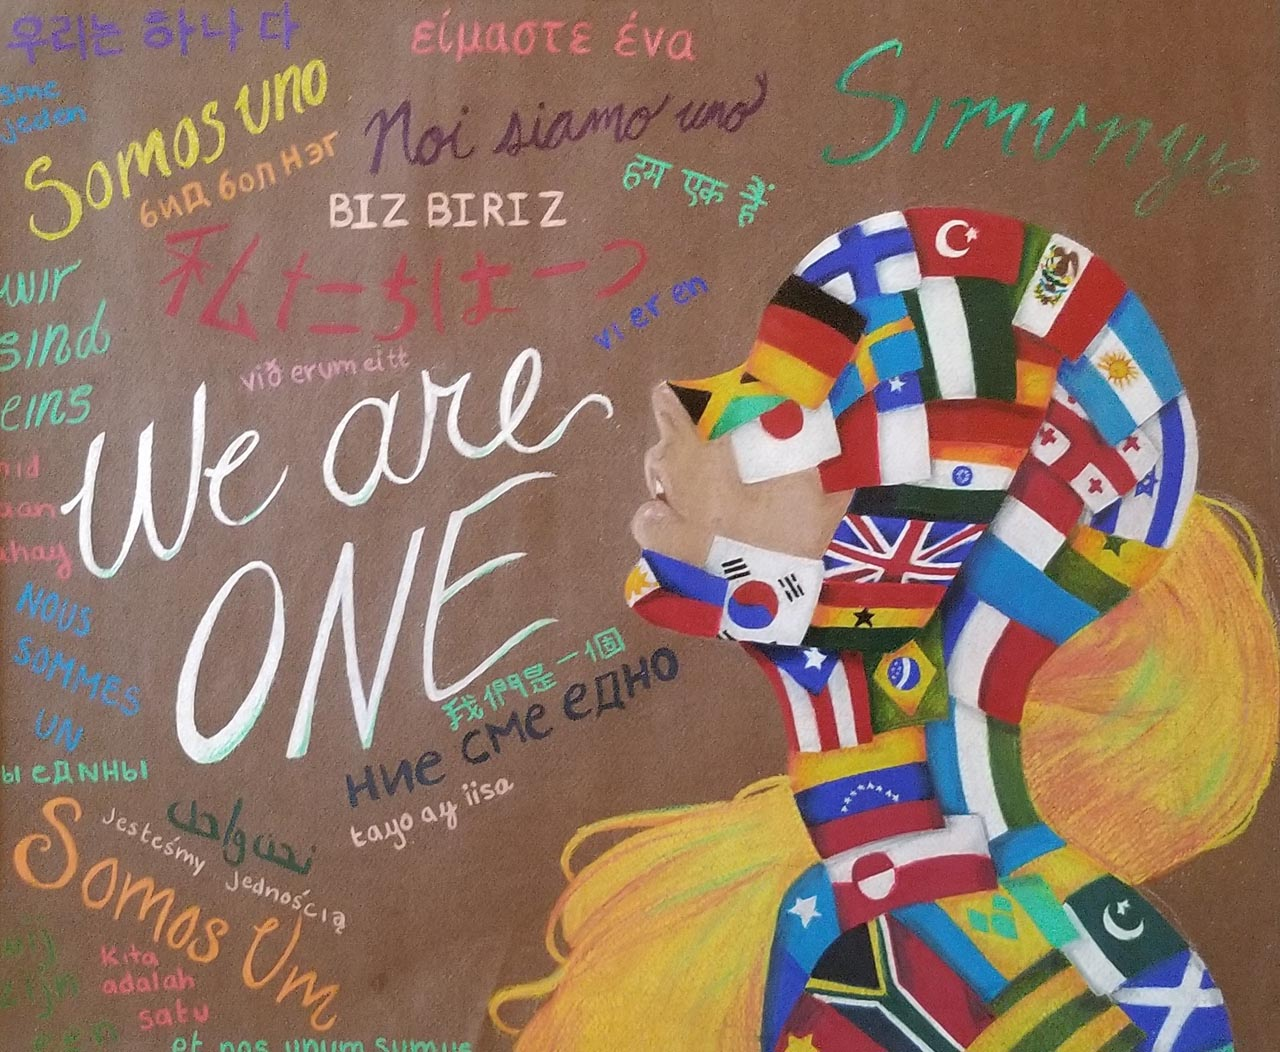 Eike Mussig Contreras | We Are One